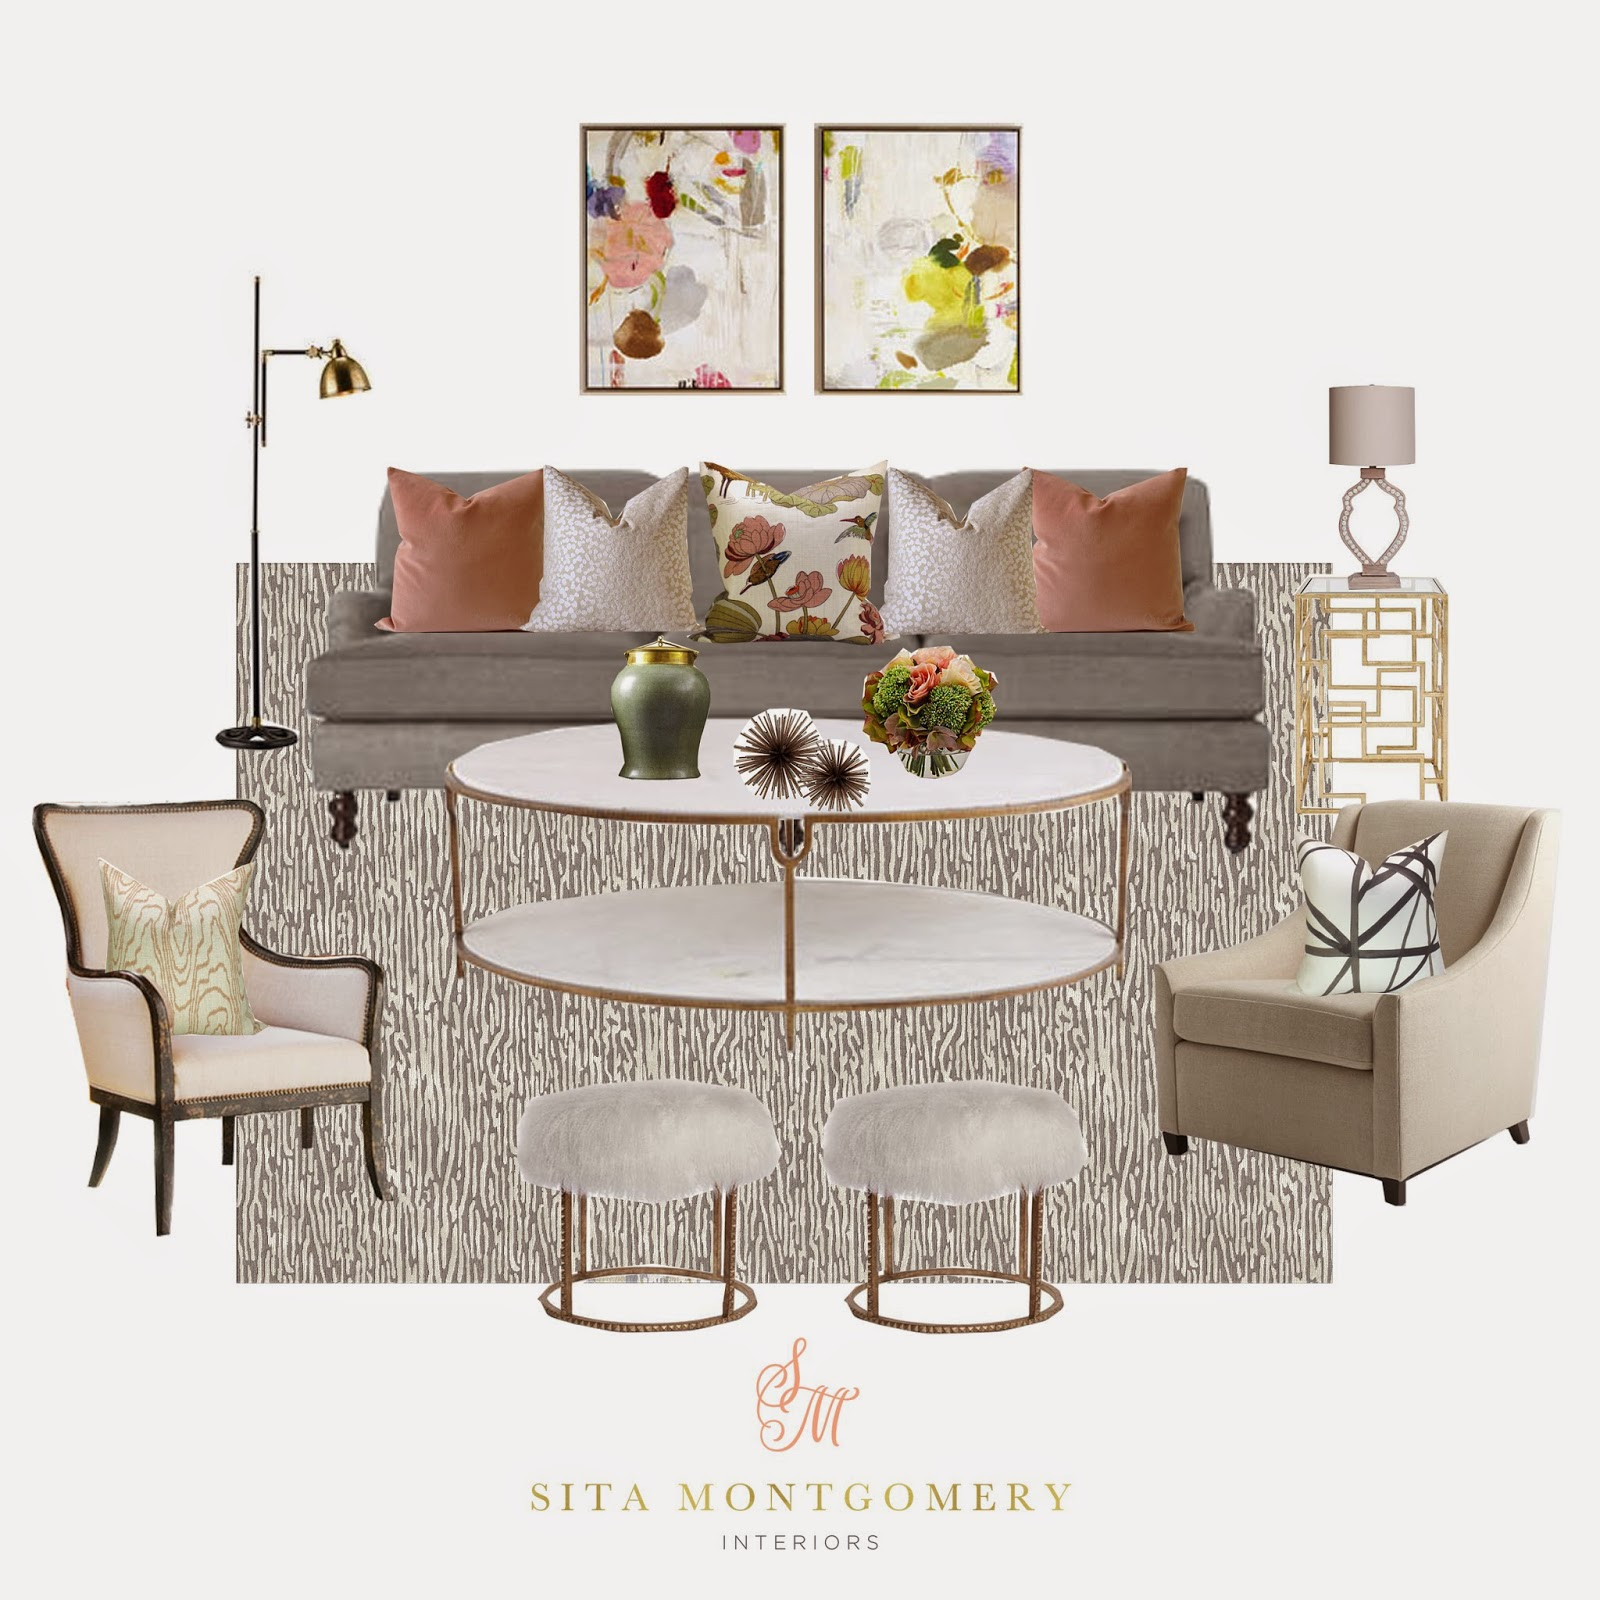 Sita Montgomery Interiors: Sita Montgomery Interiors: Shop This Room With Kathy Kuo Home